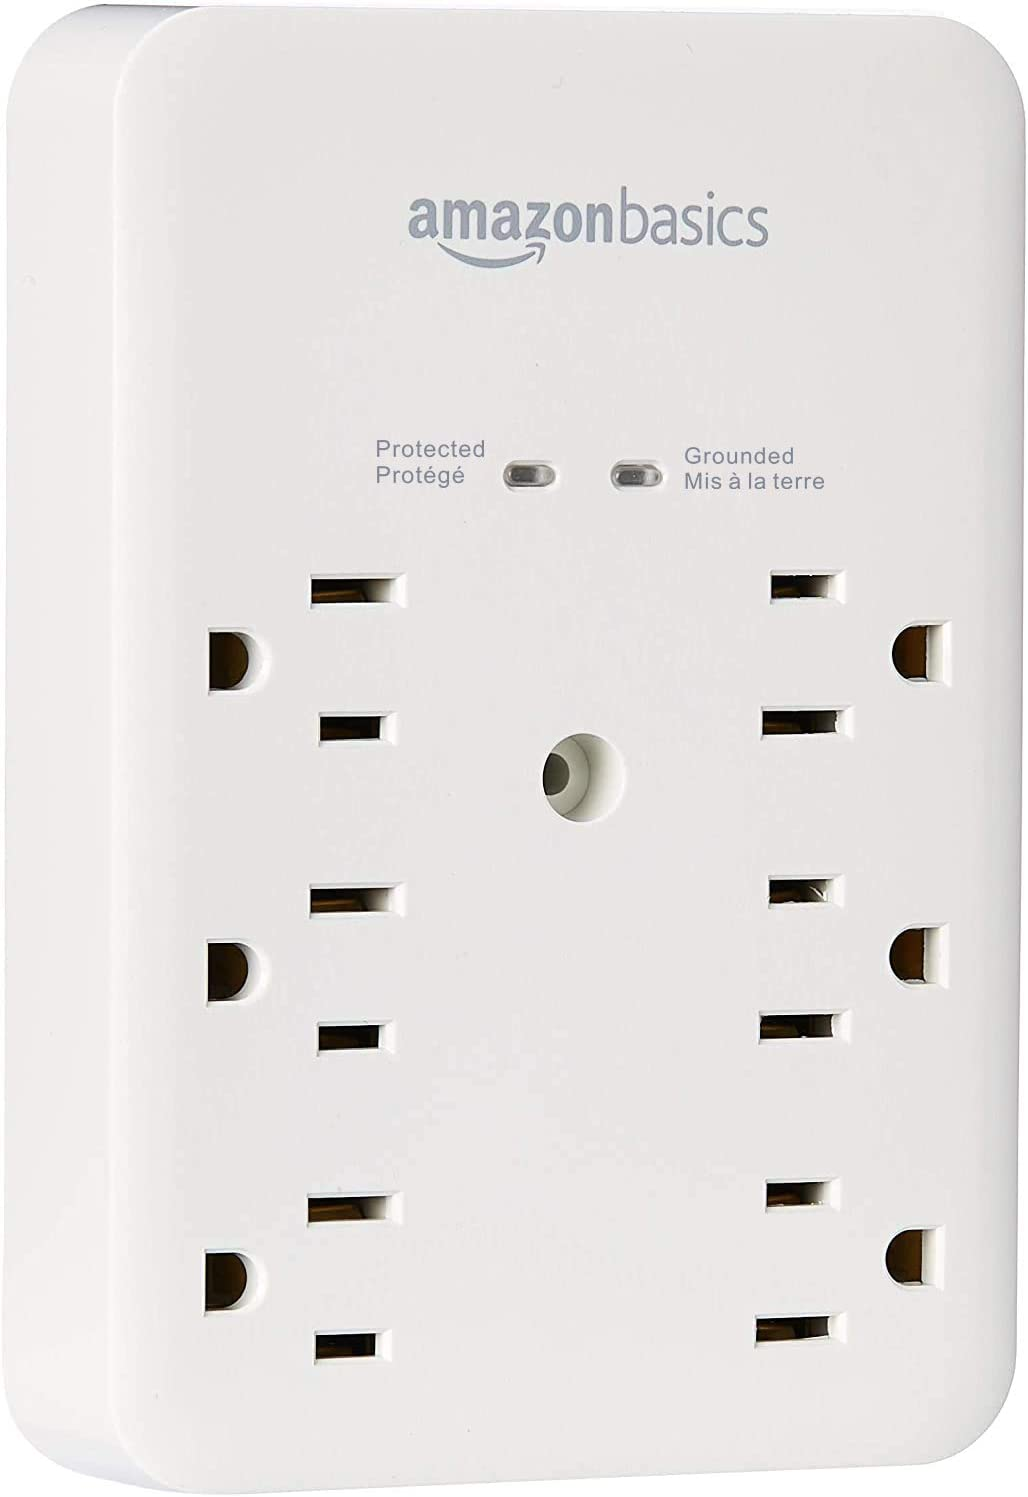 Basics 6 Outlet, Wall Mount Surge Protector, Power Strip, 2 USB ports 3.4A, 1080 Joules: Electronics